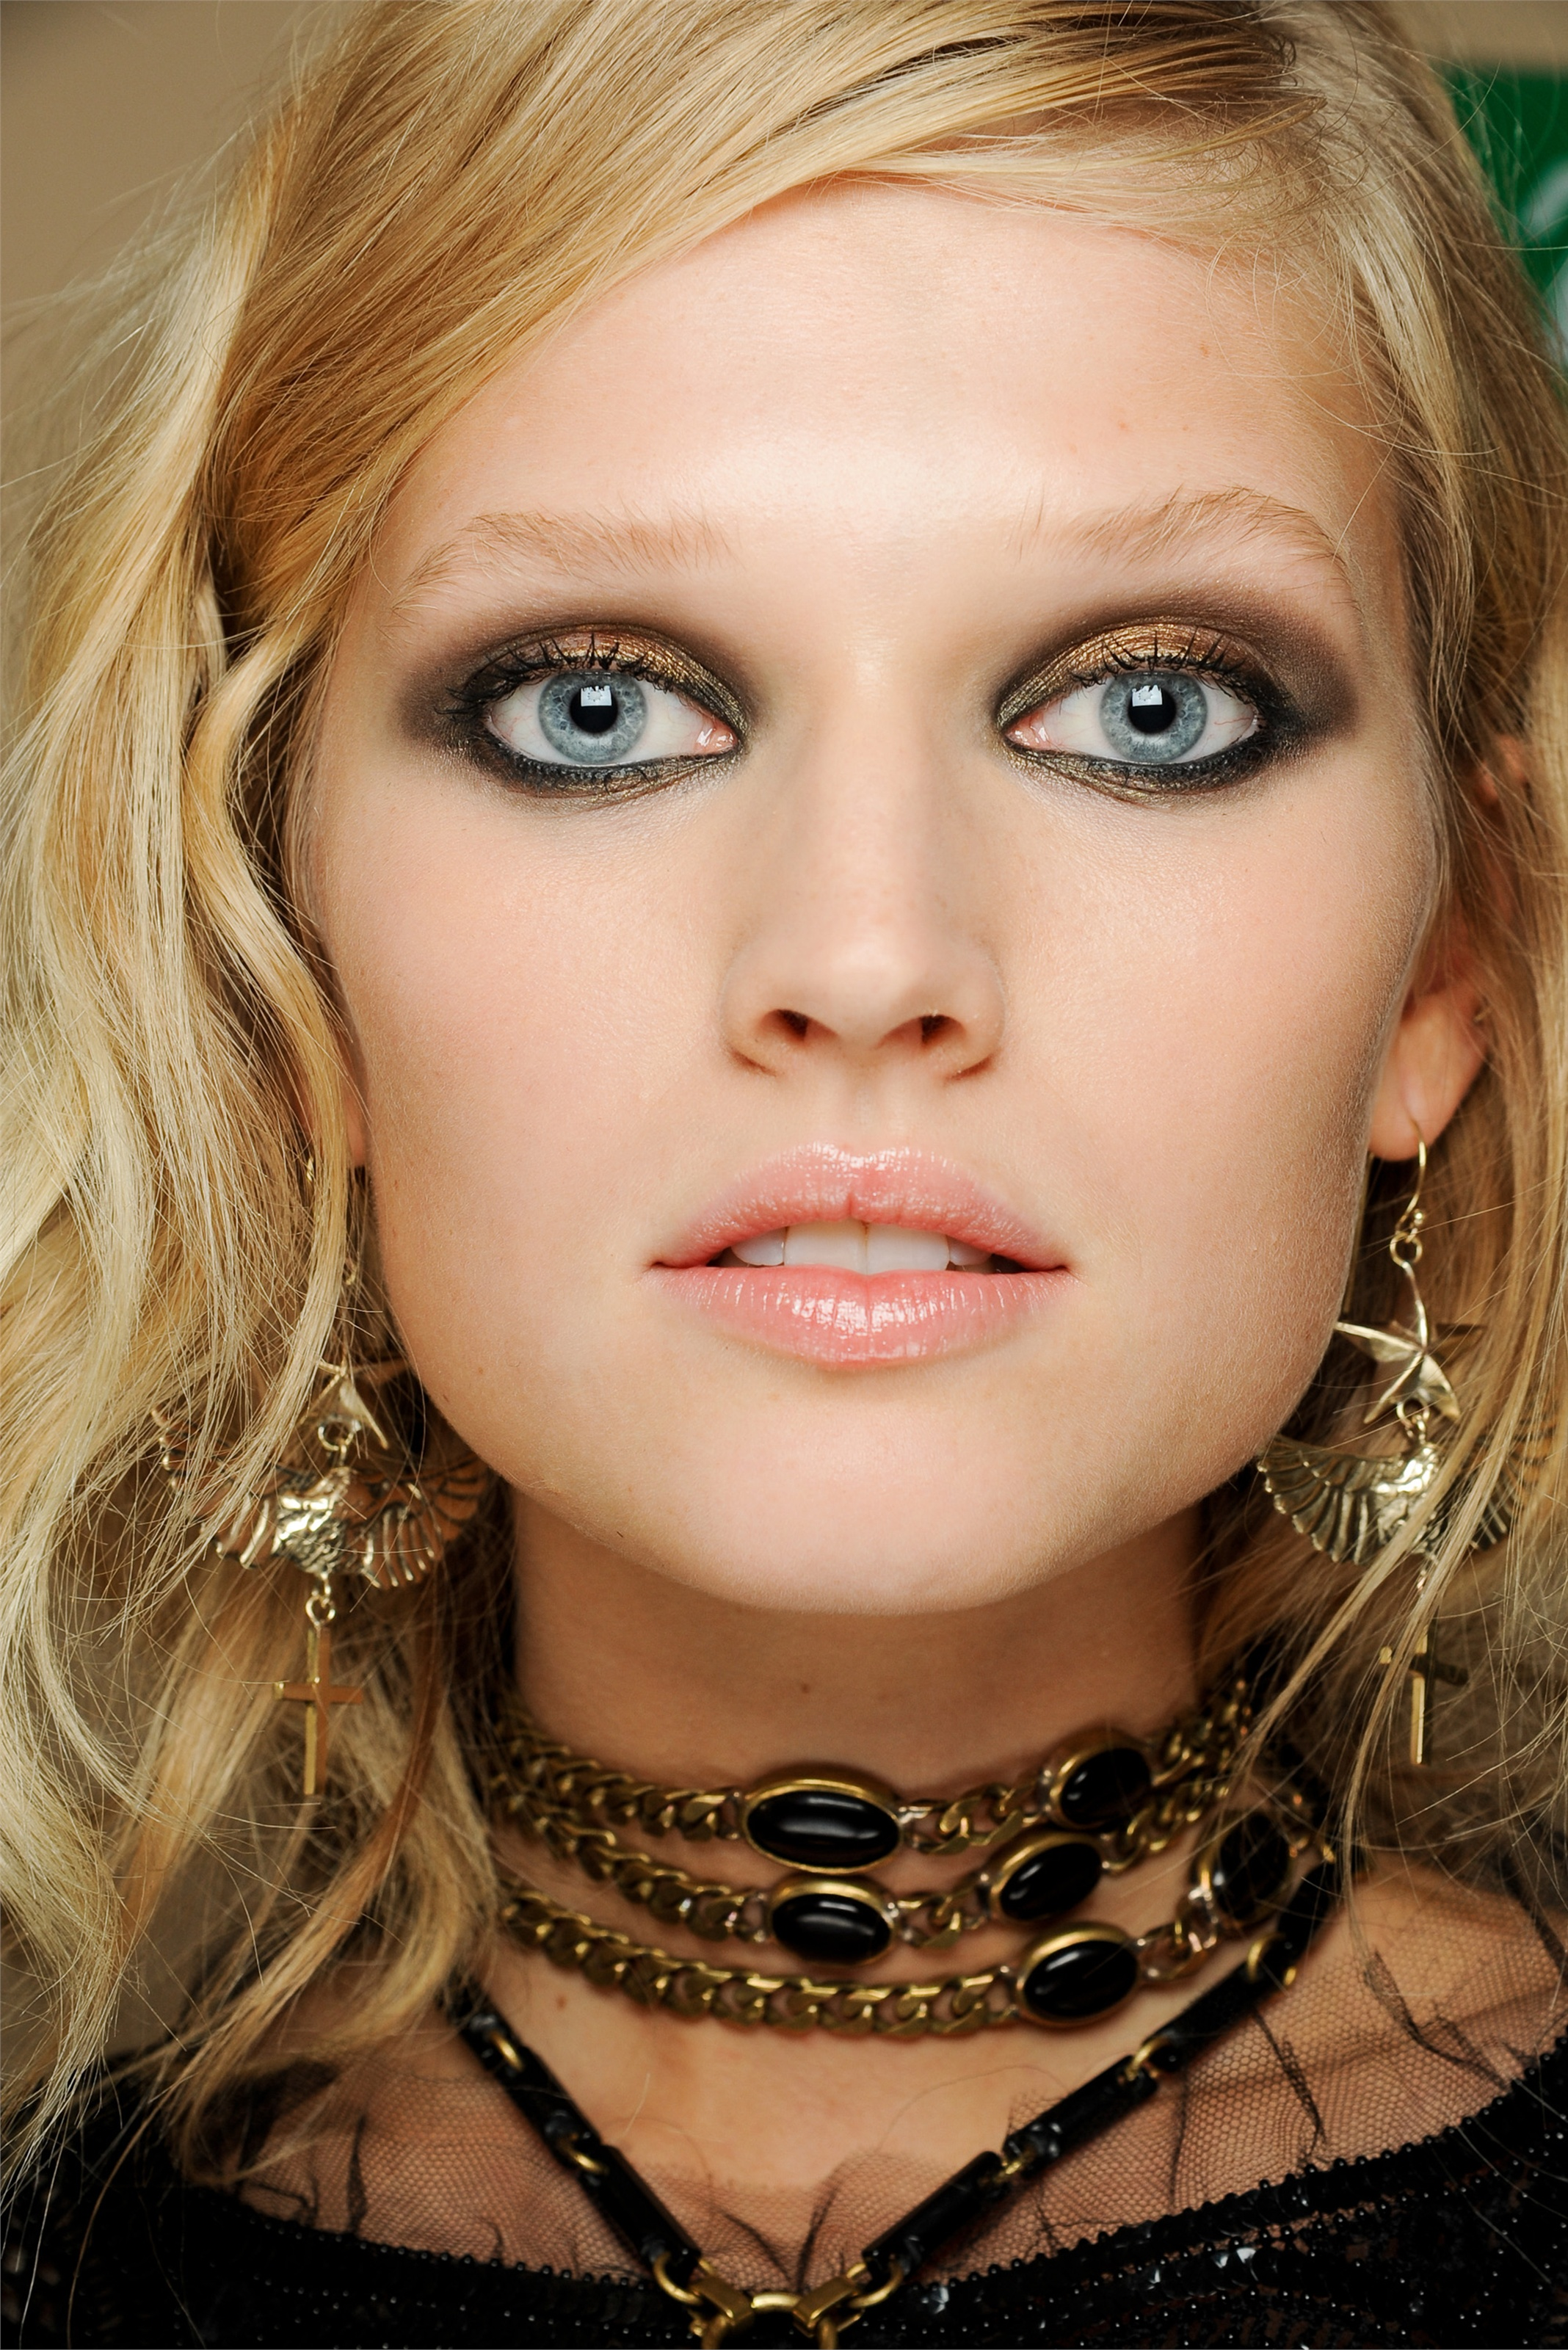 Jpg Wallpaper Girl Toni Garrn Photo 231 Of 2005 Pics Wallpaper Photo